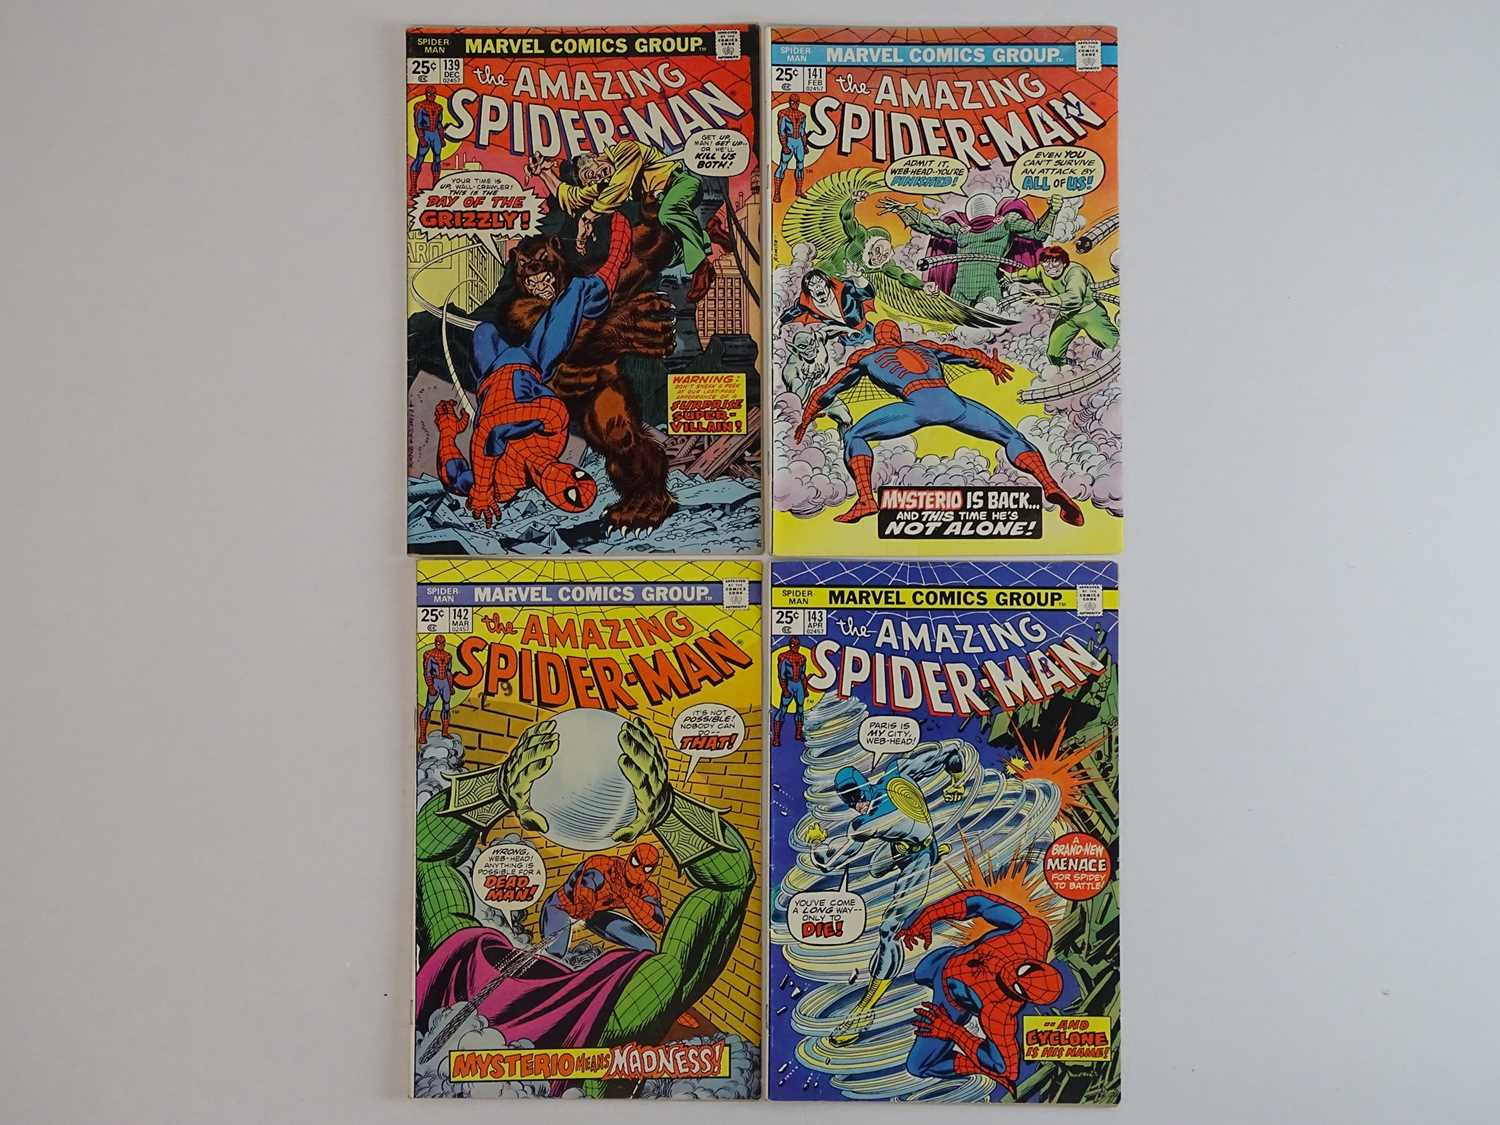 AMAZING SPIDER-MAN #139, 141, 142, 143 - (4 in Lot) - (1974/75 - MARVEL) - Includes First